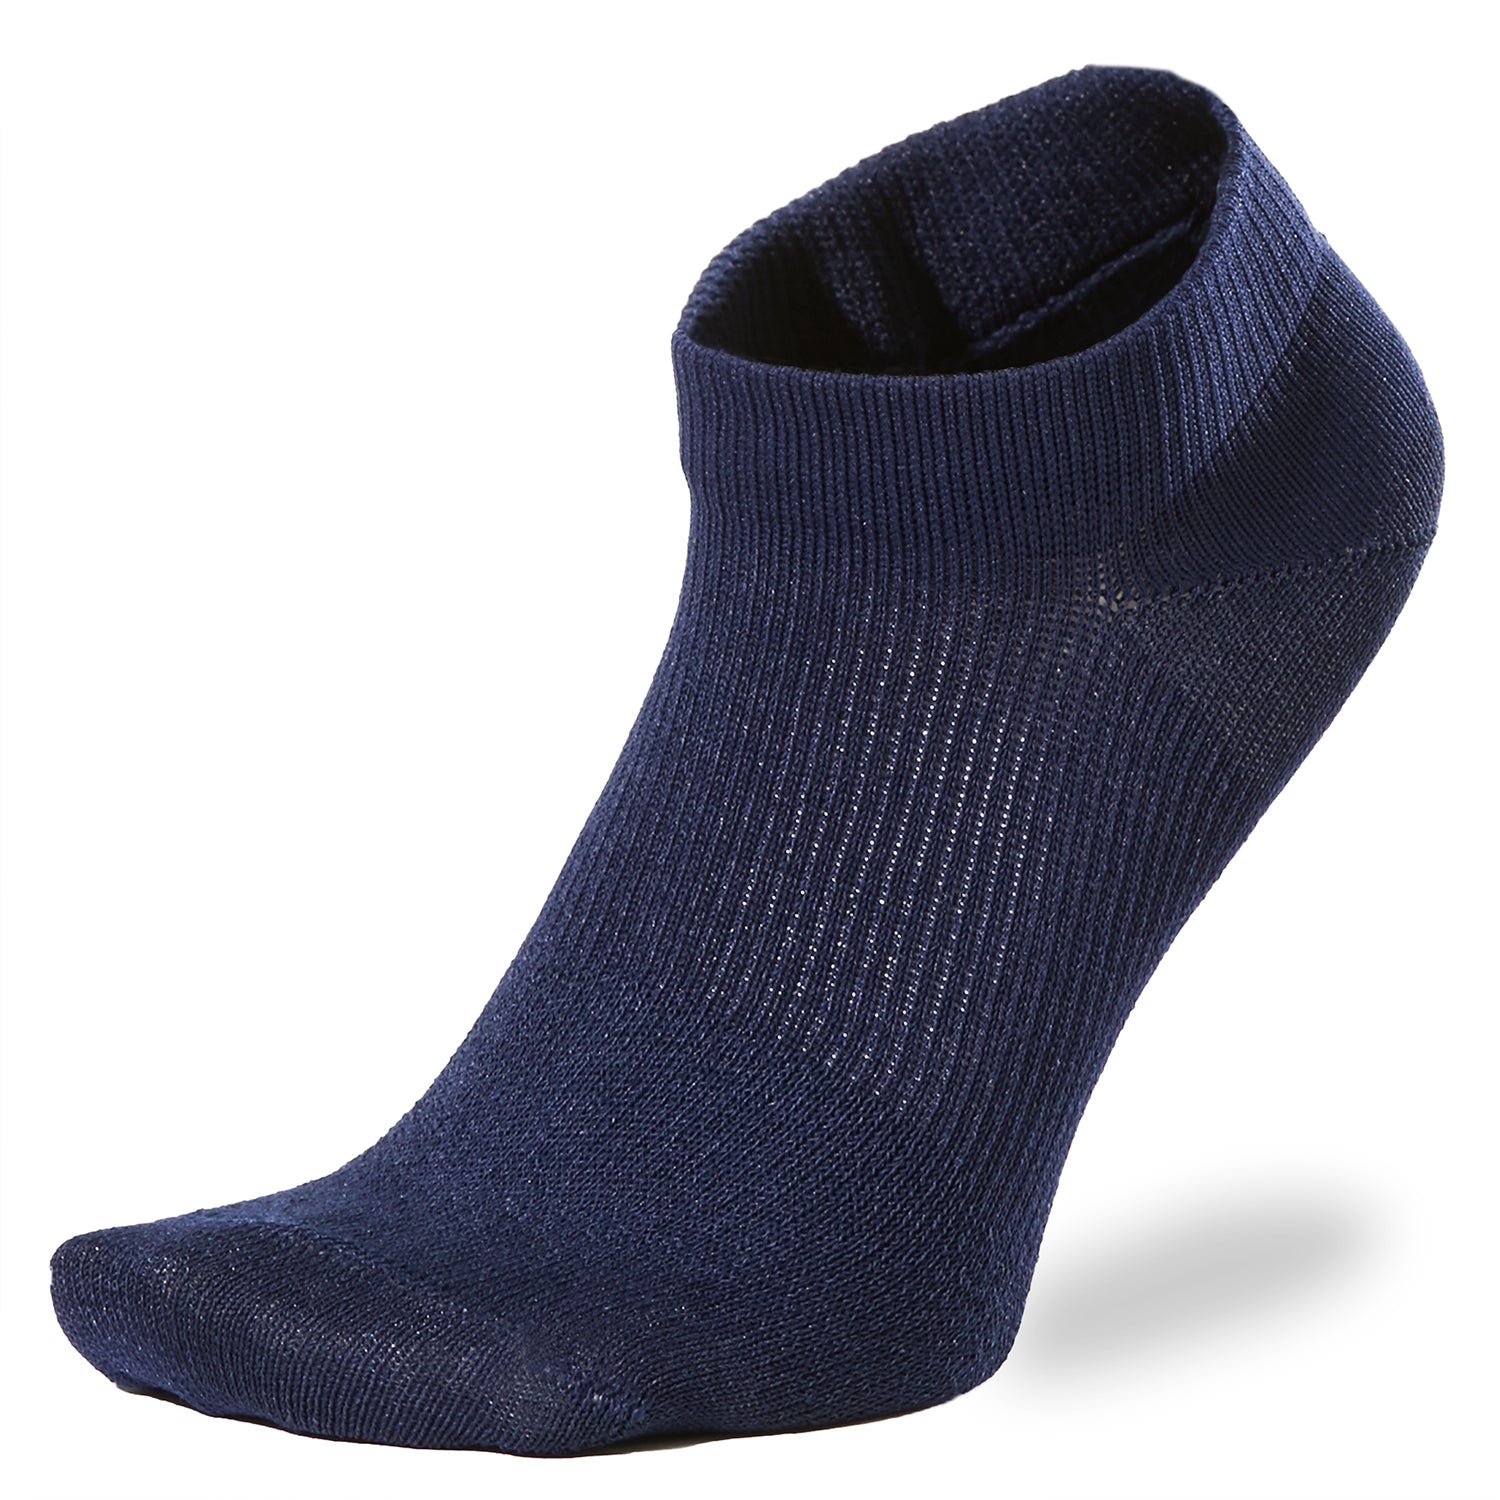 PAPER FIBER ARCH SUPPORT ANKLE SOCKS NAVY